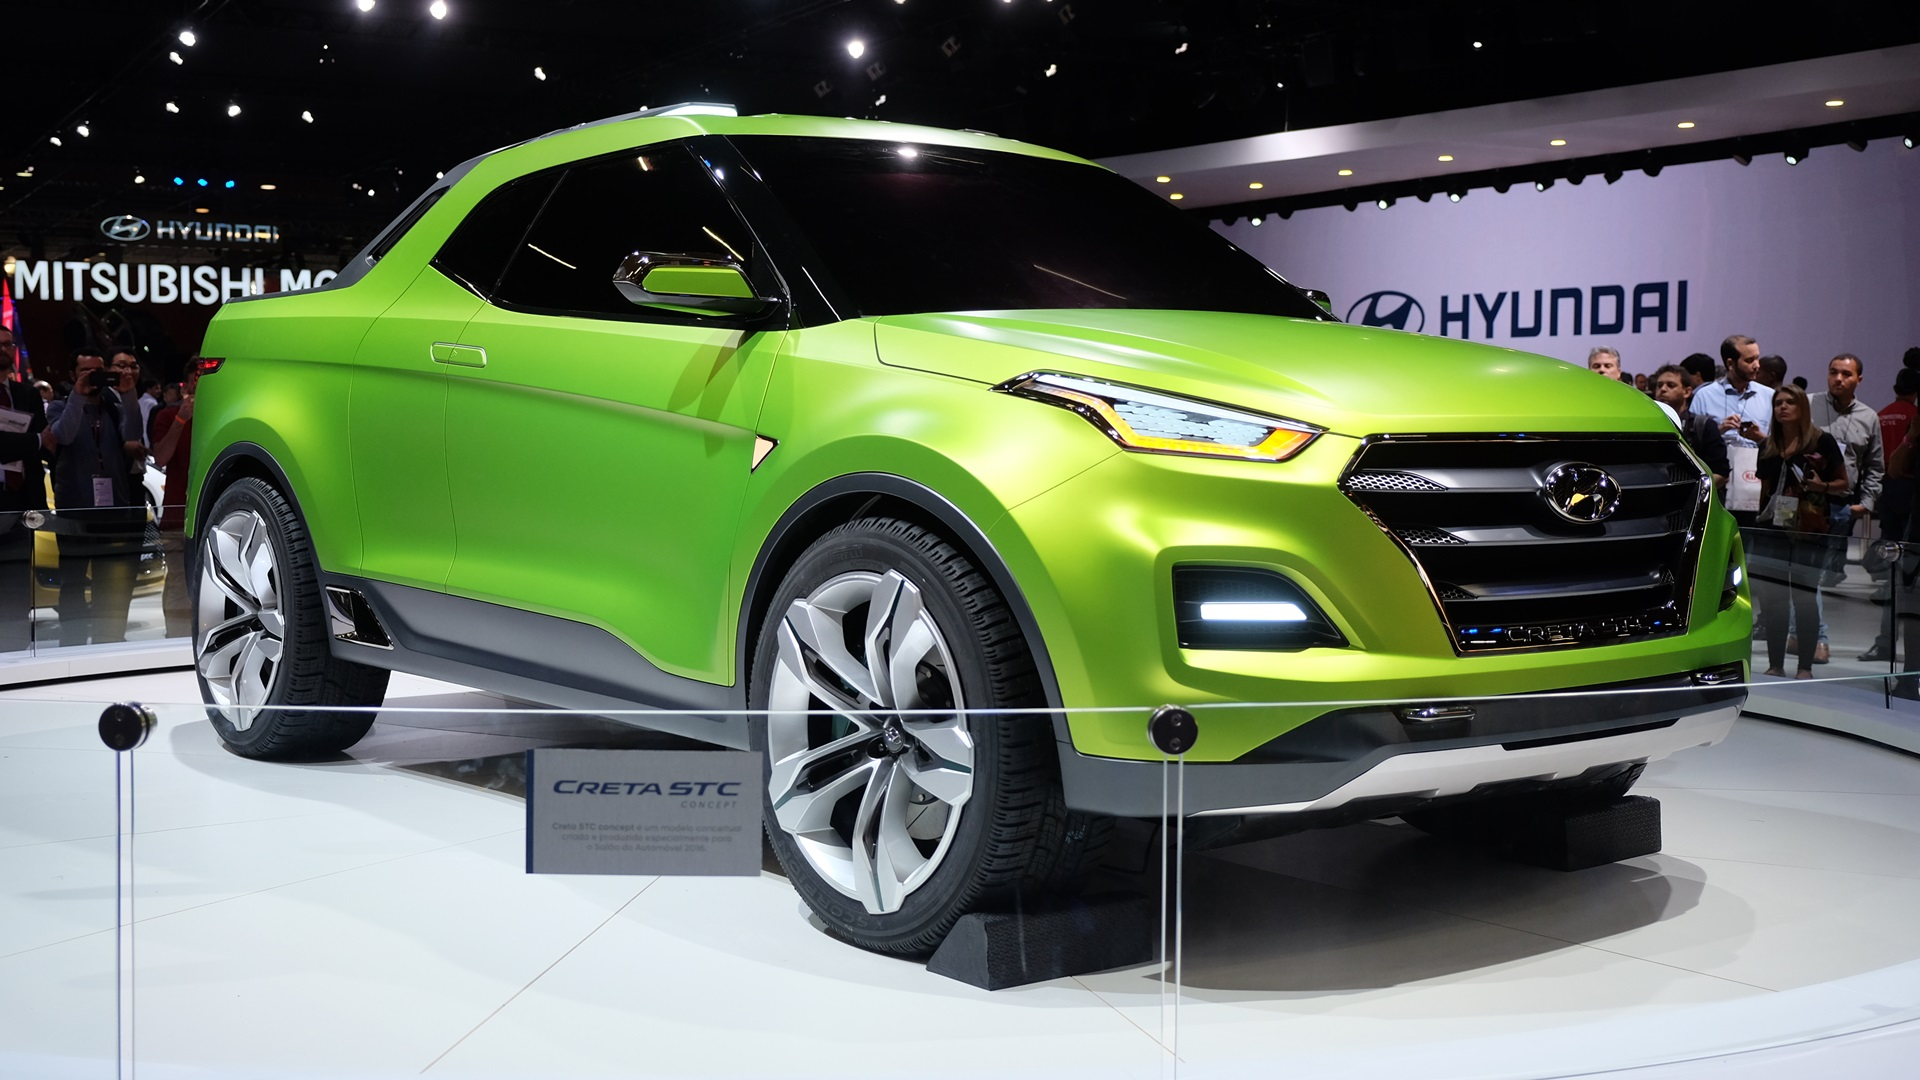 Hyundai Creta STC (Creta pick up) unveiled in Brazil